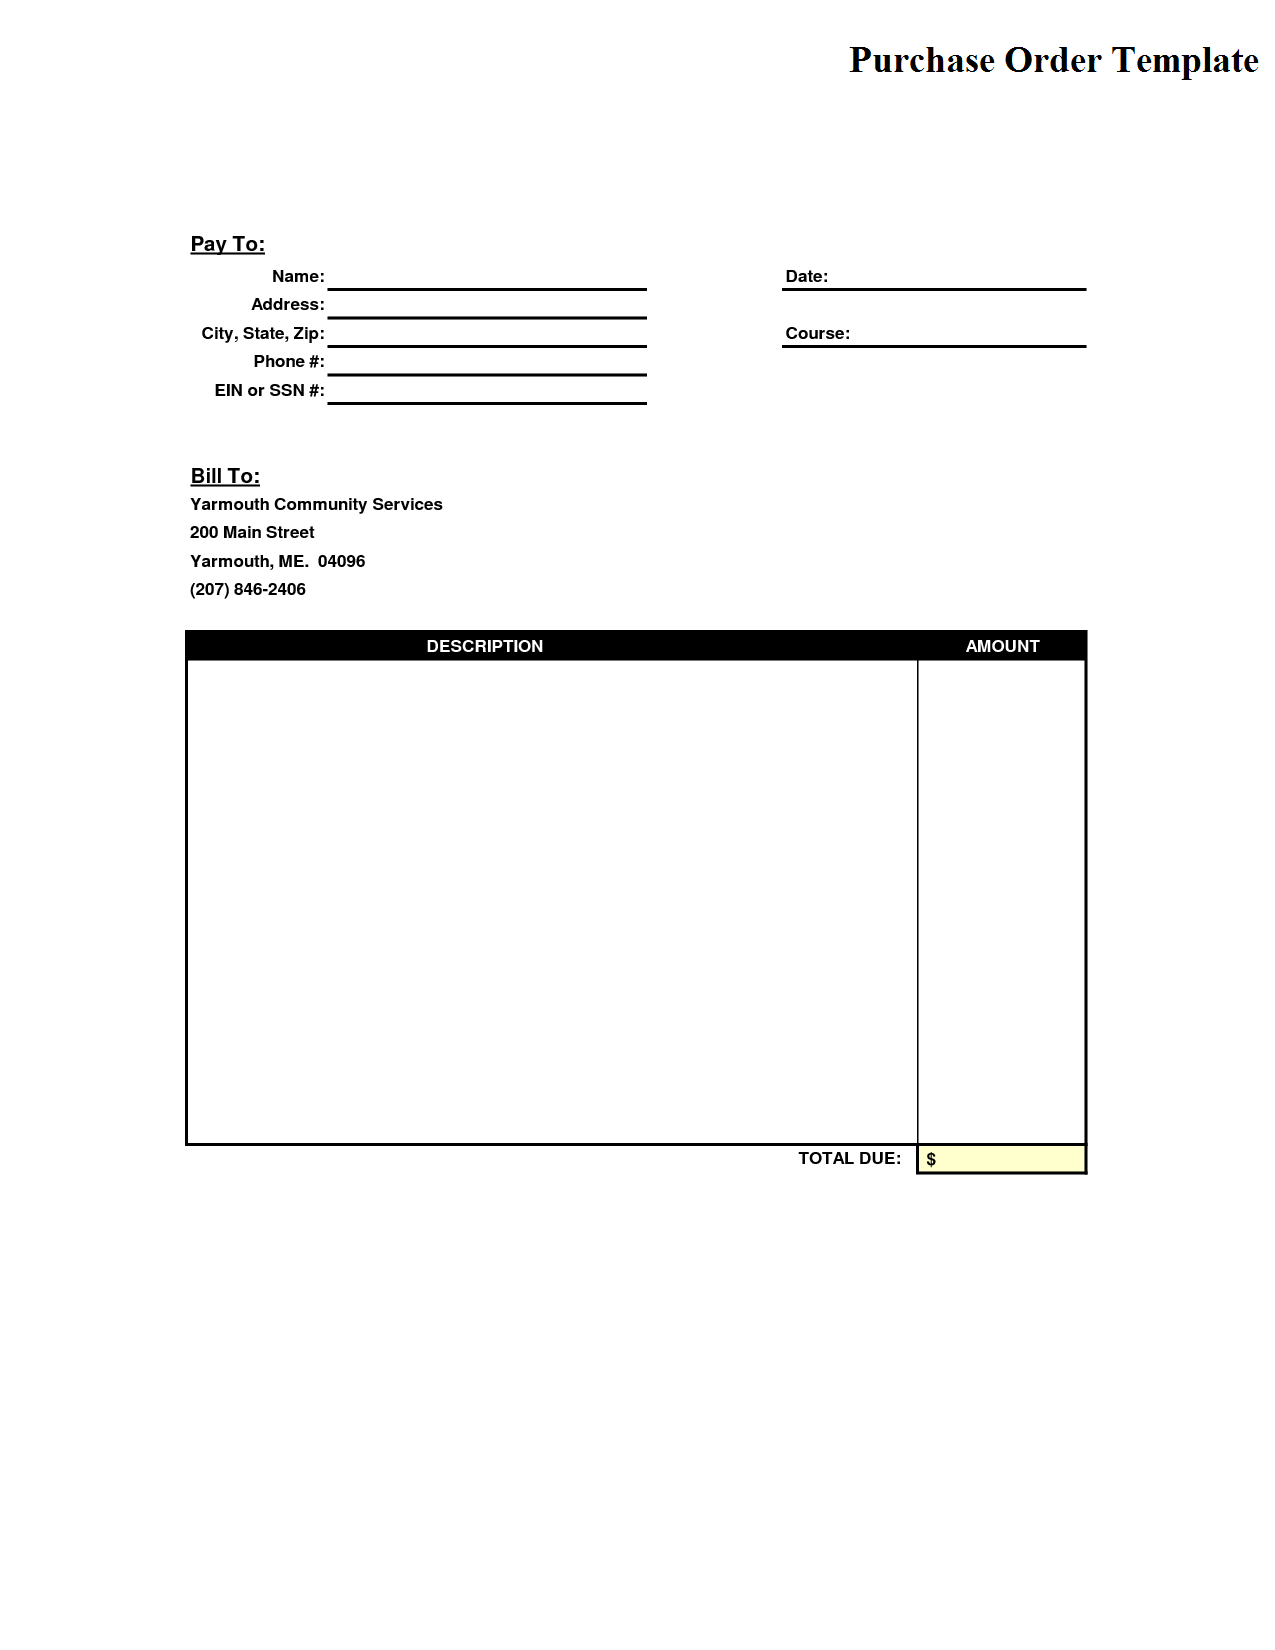 Purchase Order Template Pdf  Purchase Order Form Template Pdf